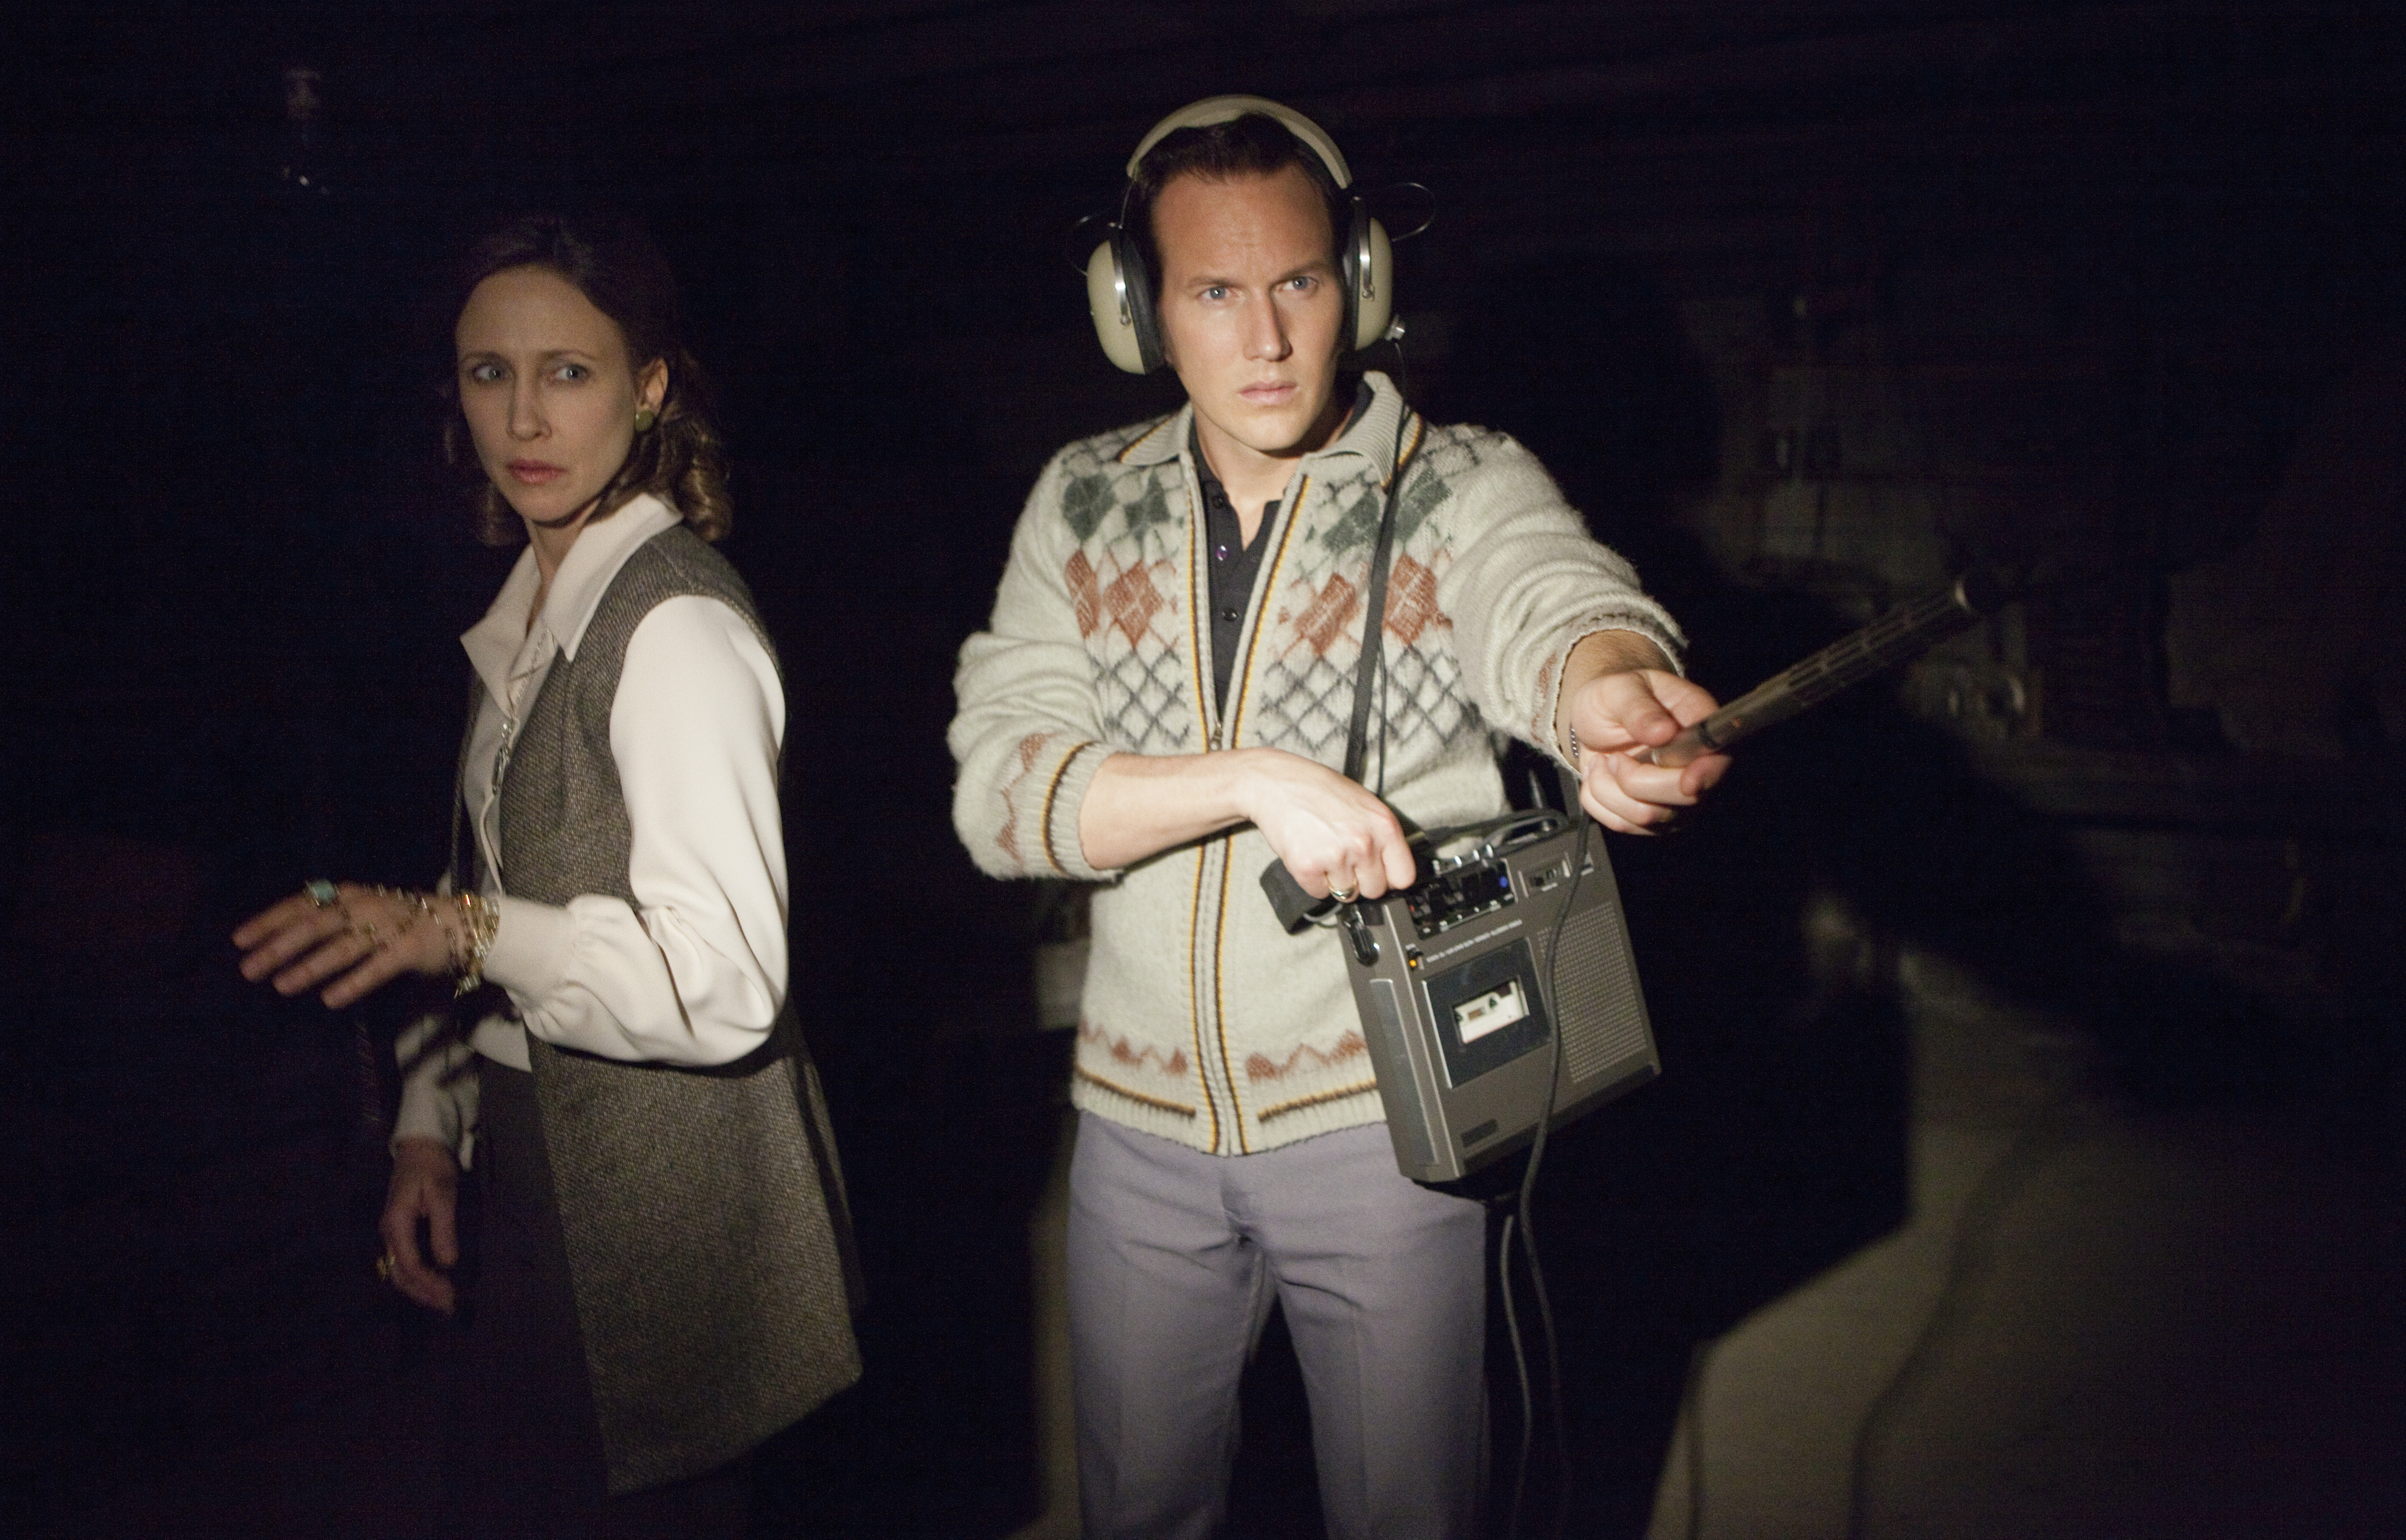 N J Conjuring Star Patrick Wilson Will Make Directorial Debut With Insidious 5 Nj Com